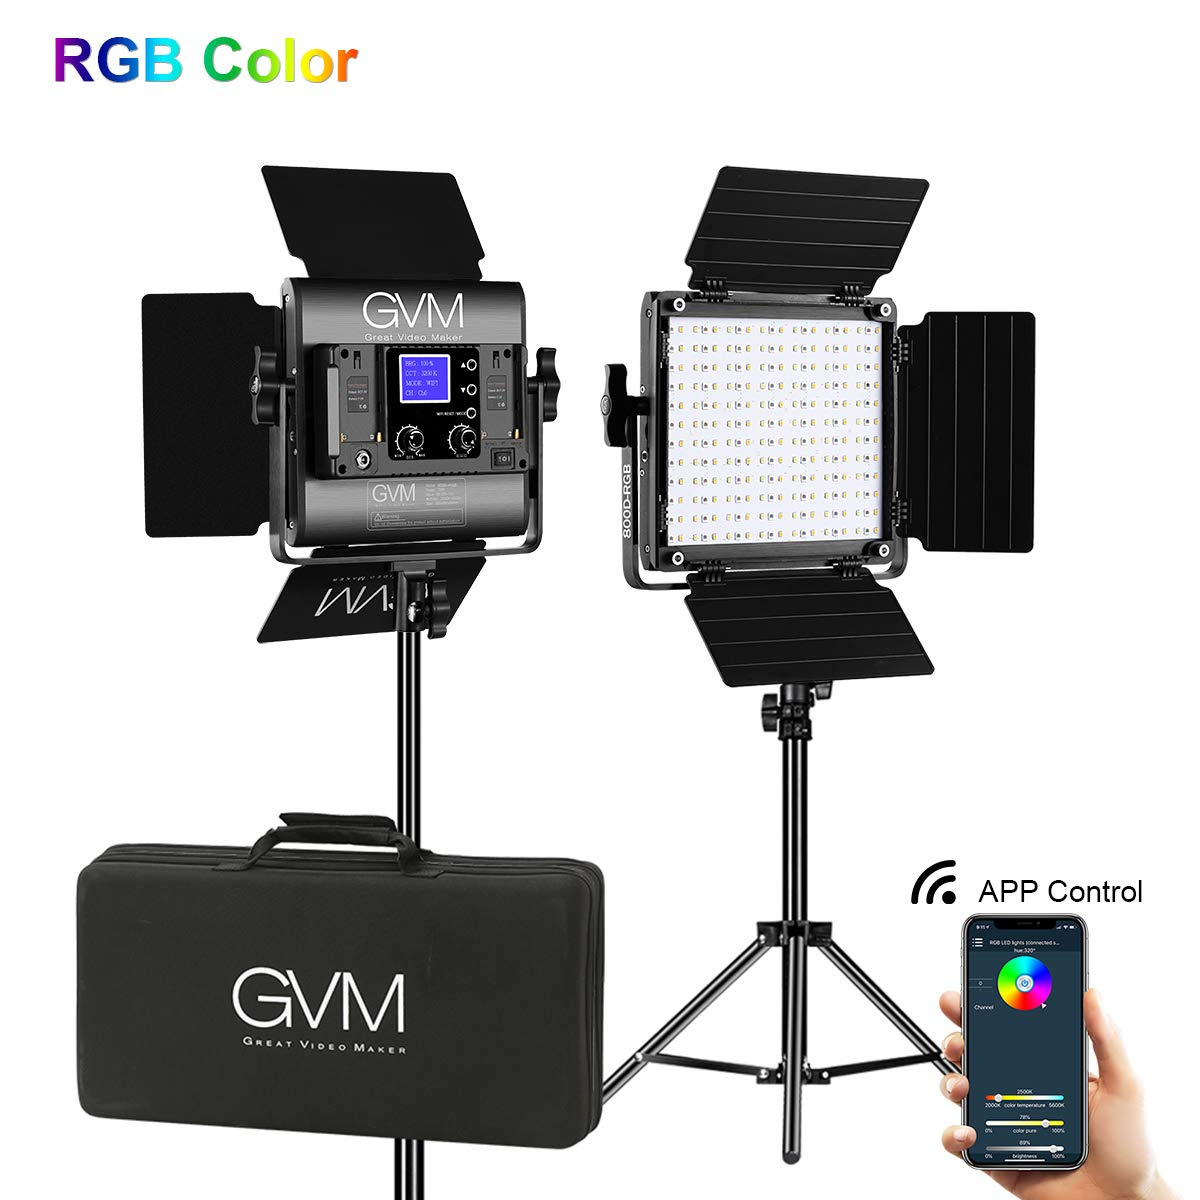 GVM Led Video Light 2 kit with APP Phone Control; 40W Adjustable 7 Colors+ Bi-Colors, CRI97 + / Brightness 0% -100%, Stand + Barndoor + LCD Screen;800D-RGB Lighting for YouTube, Studio by GVM Great Video Maker